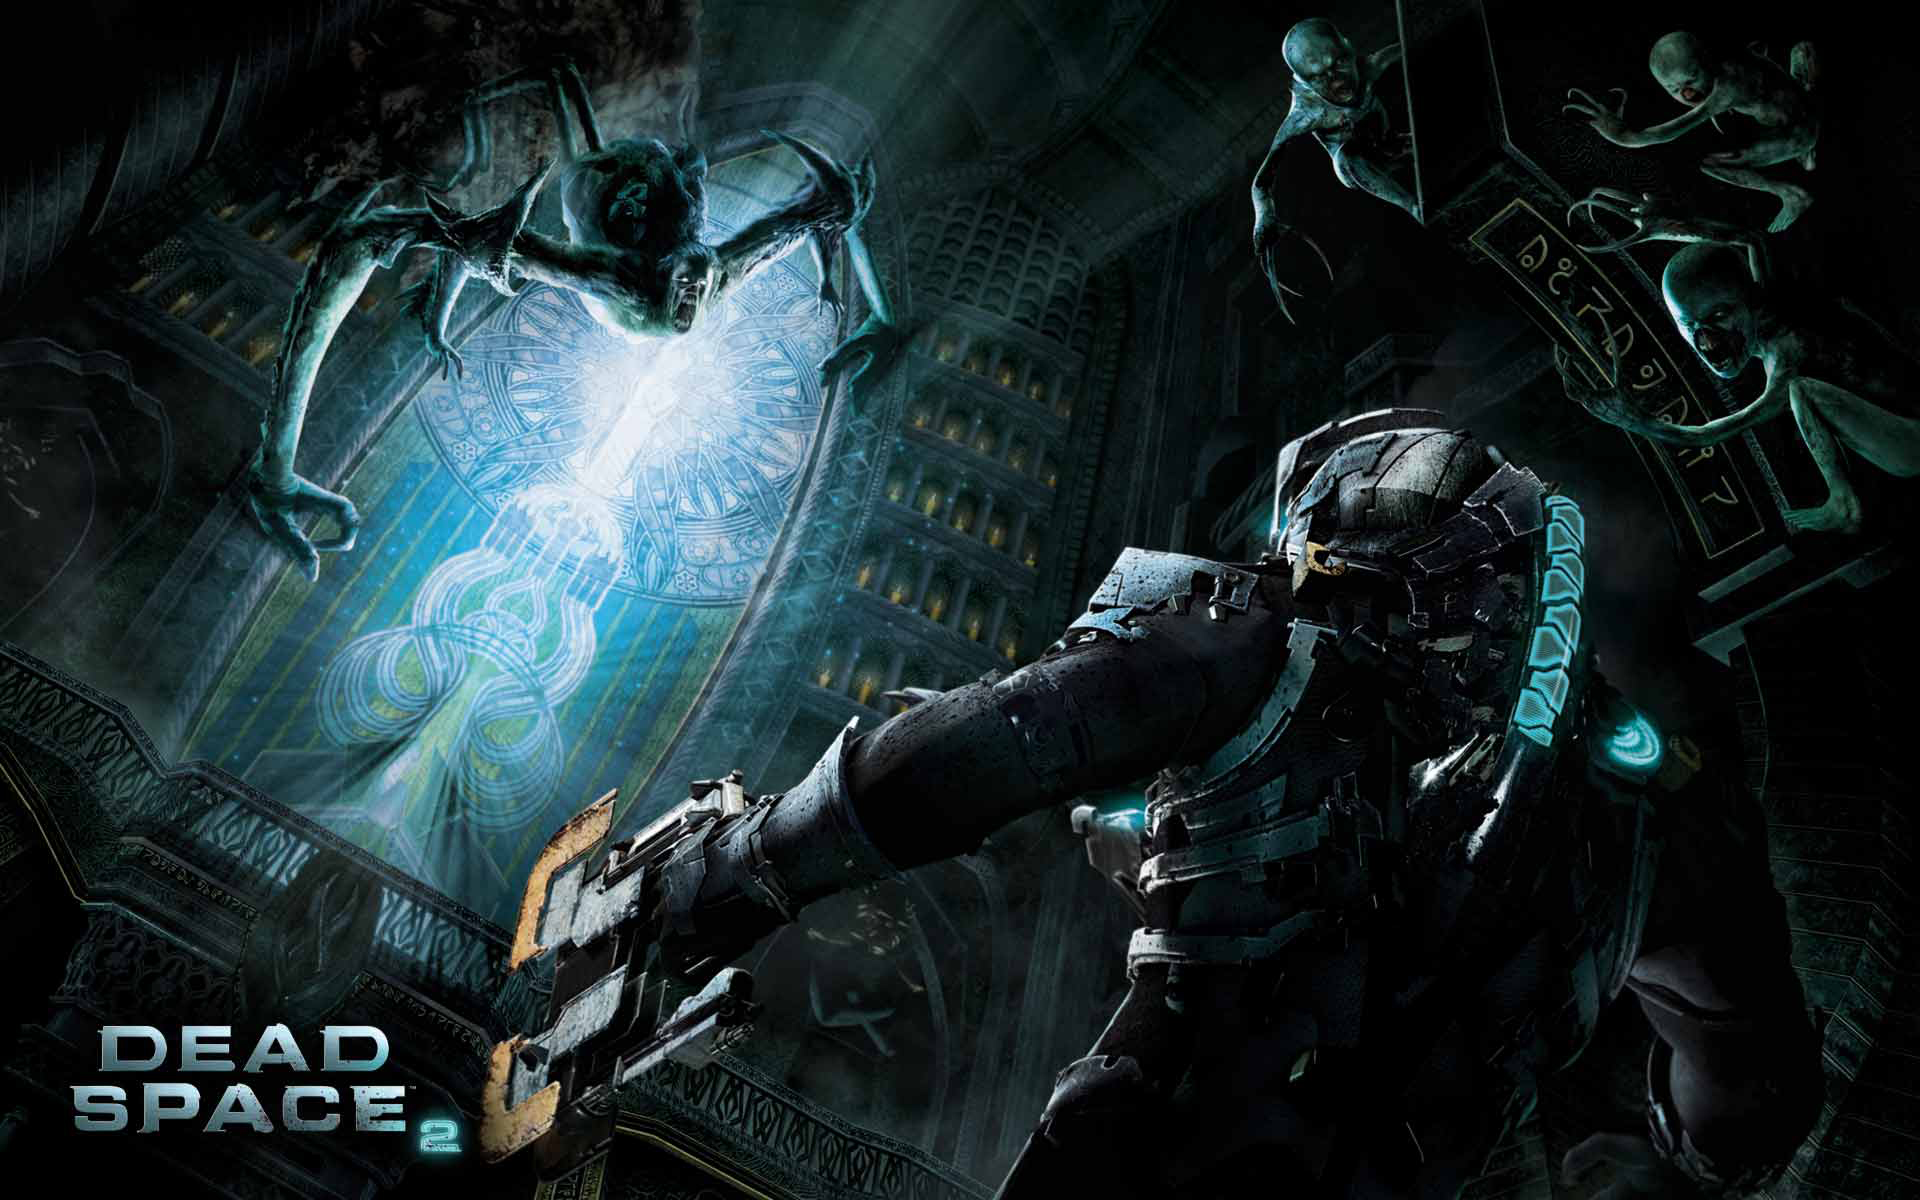 Dead Space 1920x1200